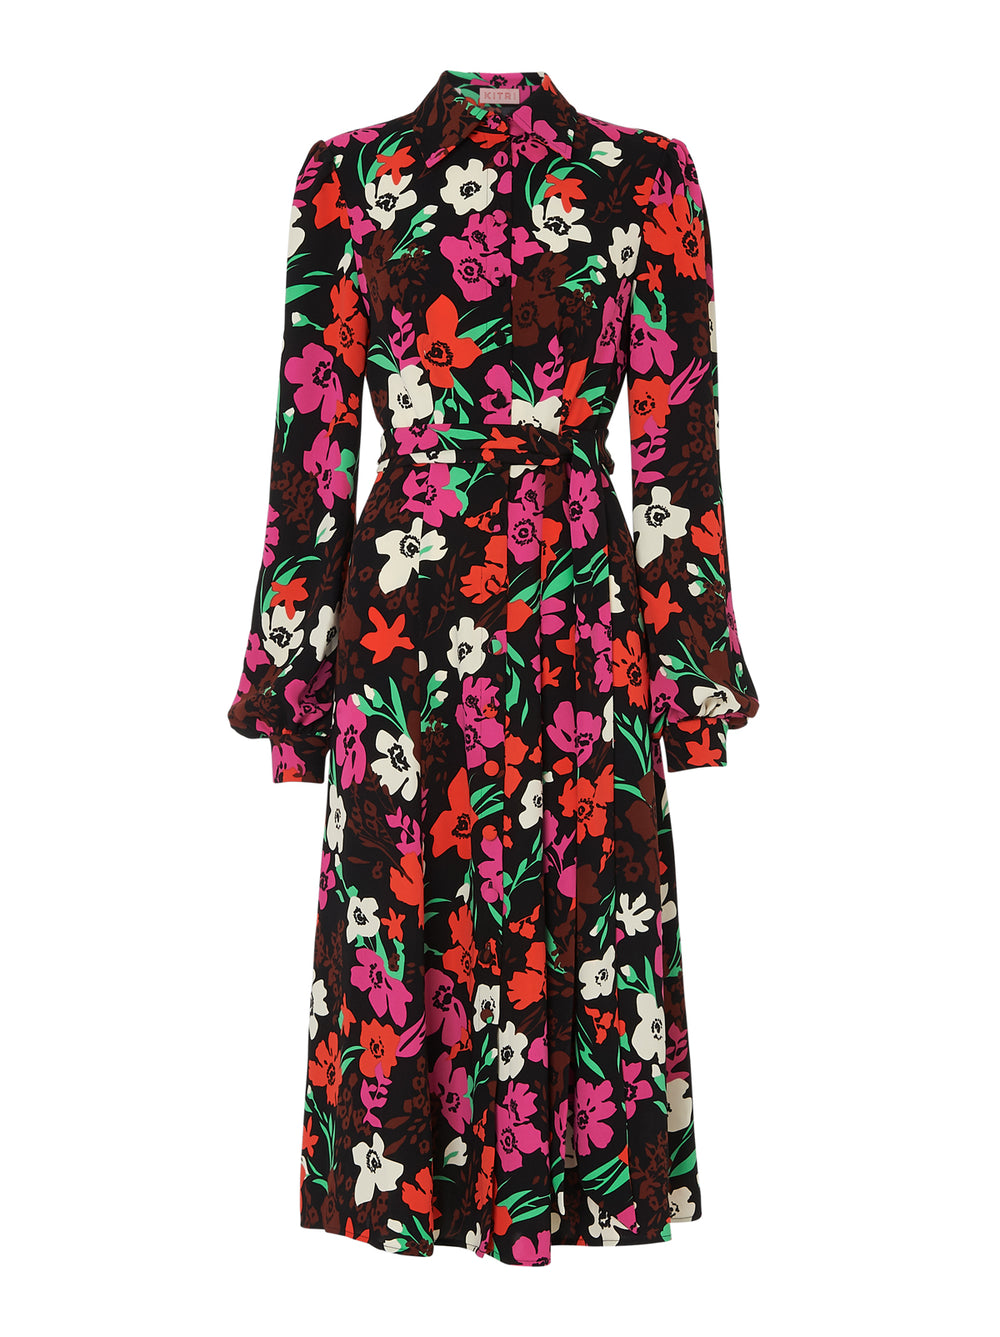 Alicia Floral Print Shirt Dress